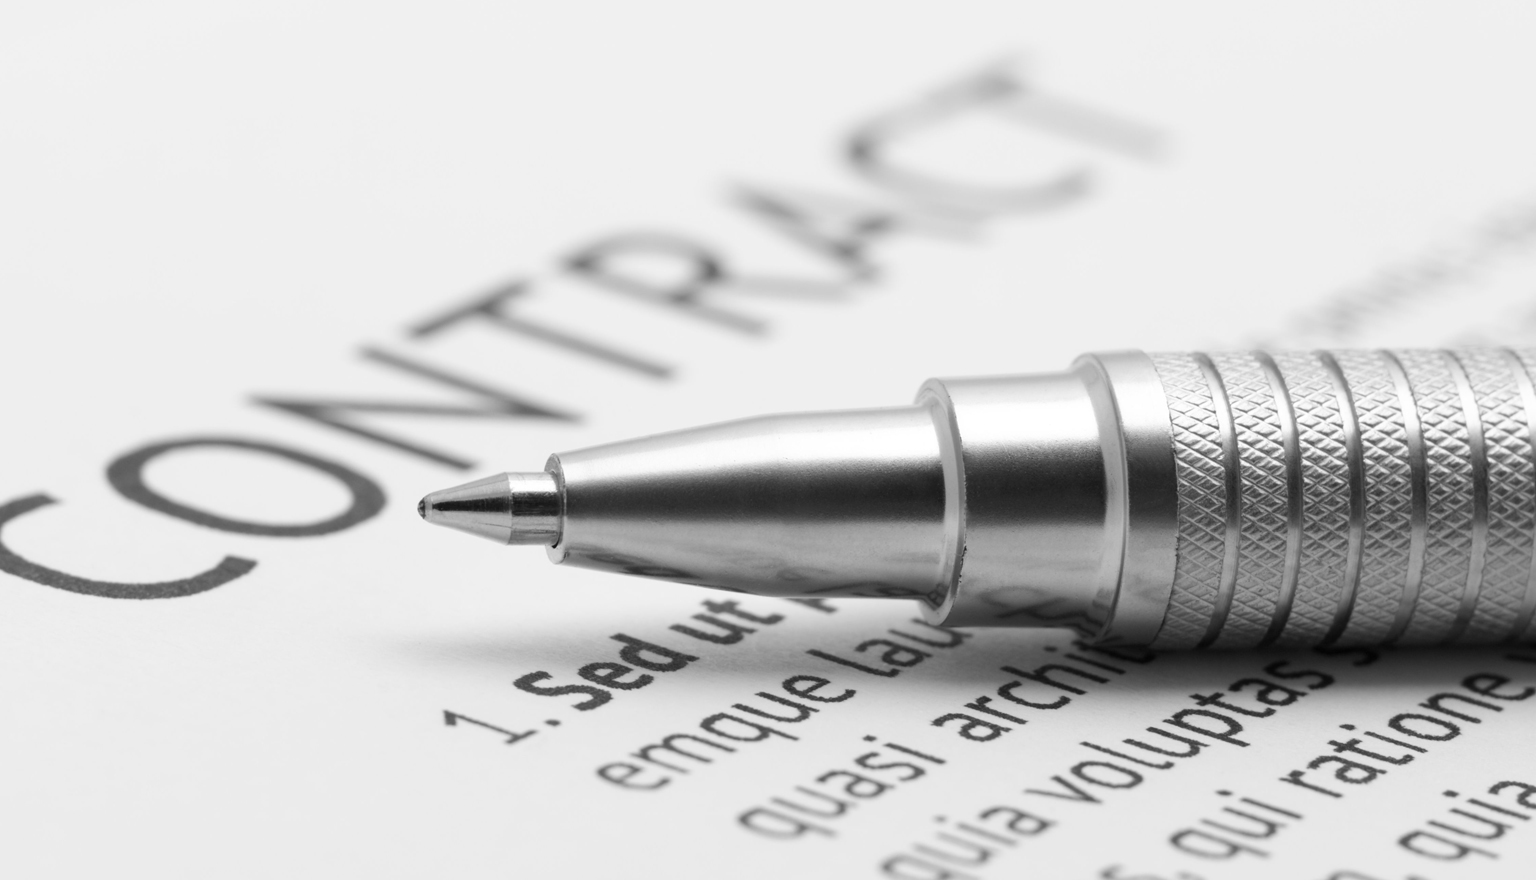 DRAFTING INTERNATIONAL SALE CONTRACT AND JOINT VENTURE AGREEMENT UNDER THE LAWS OF VIETNAM